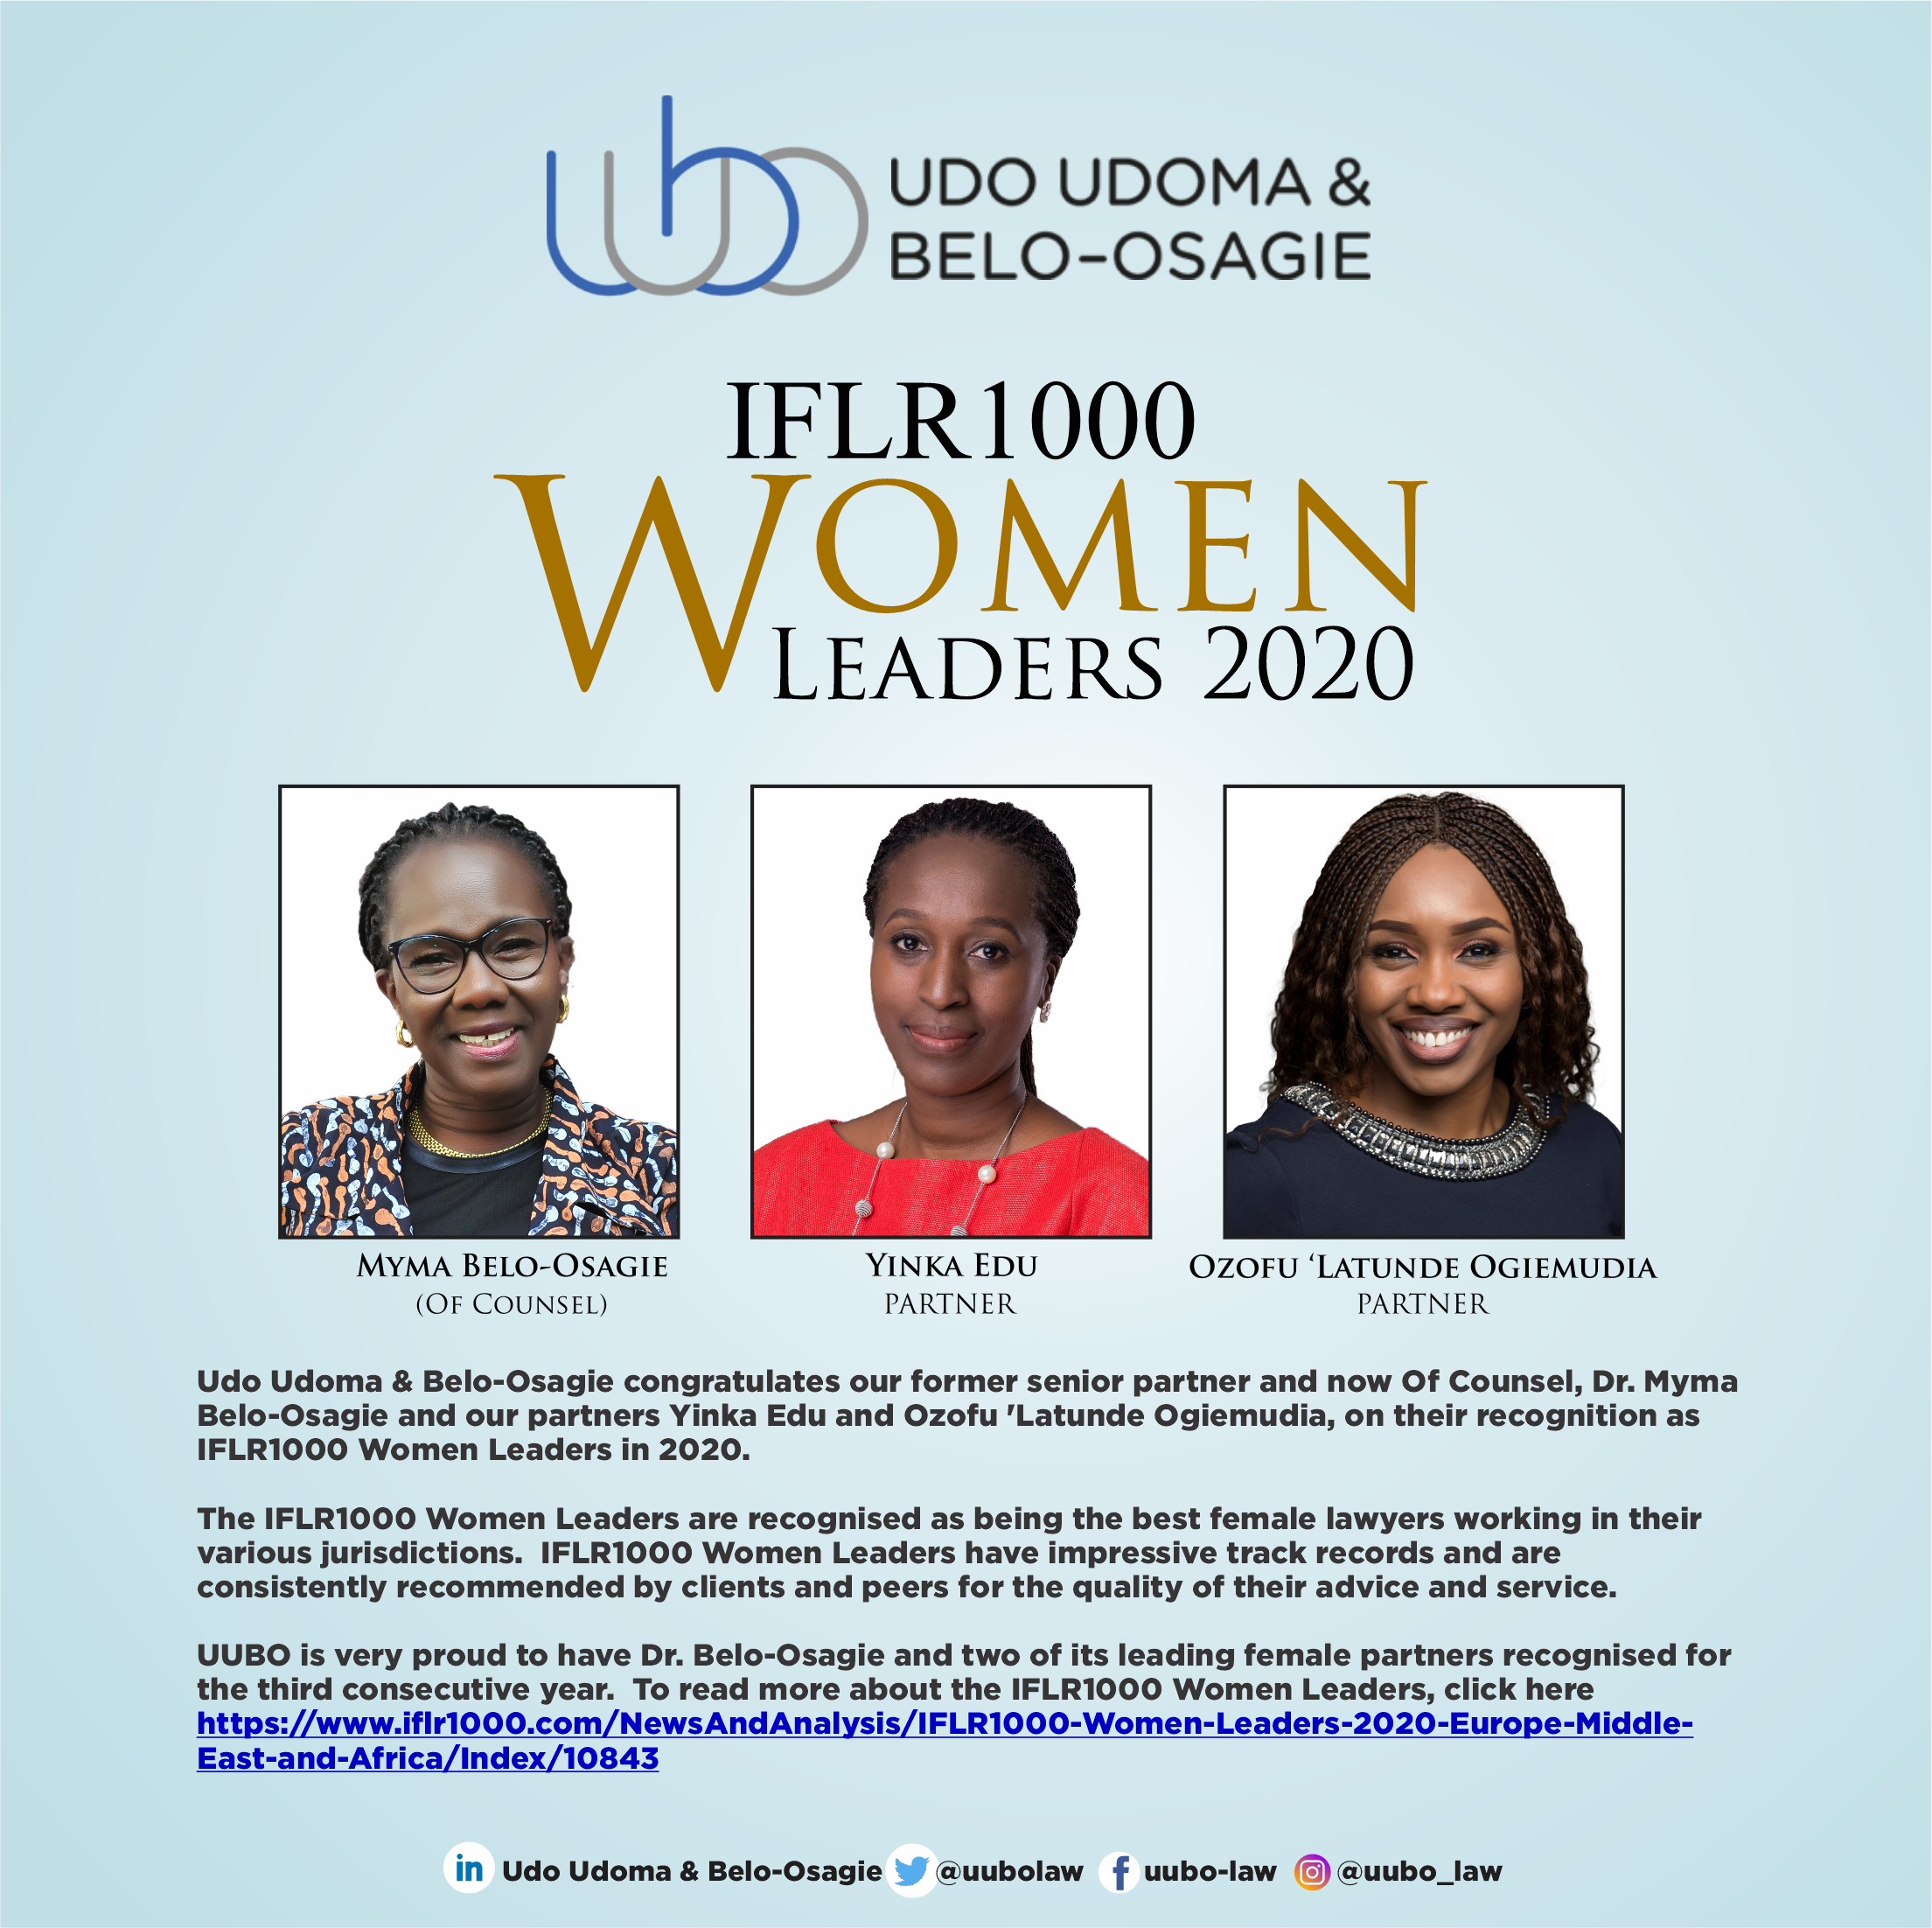 UUBO IFLR1000 Women Leaders 2020